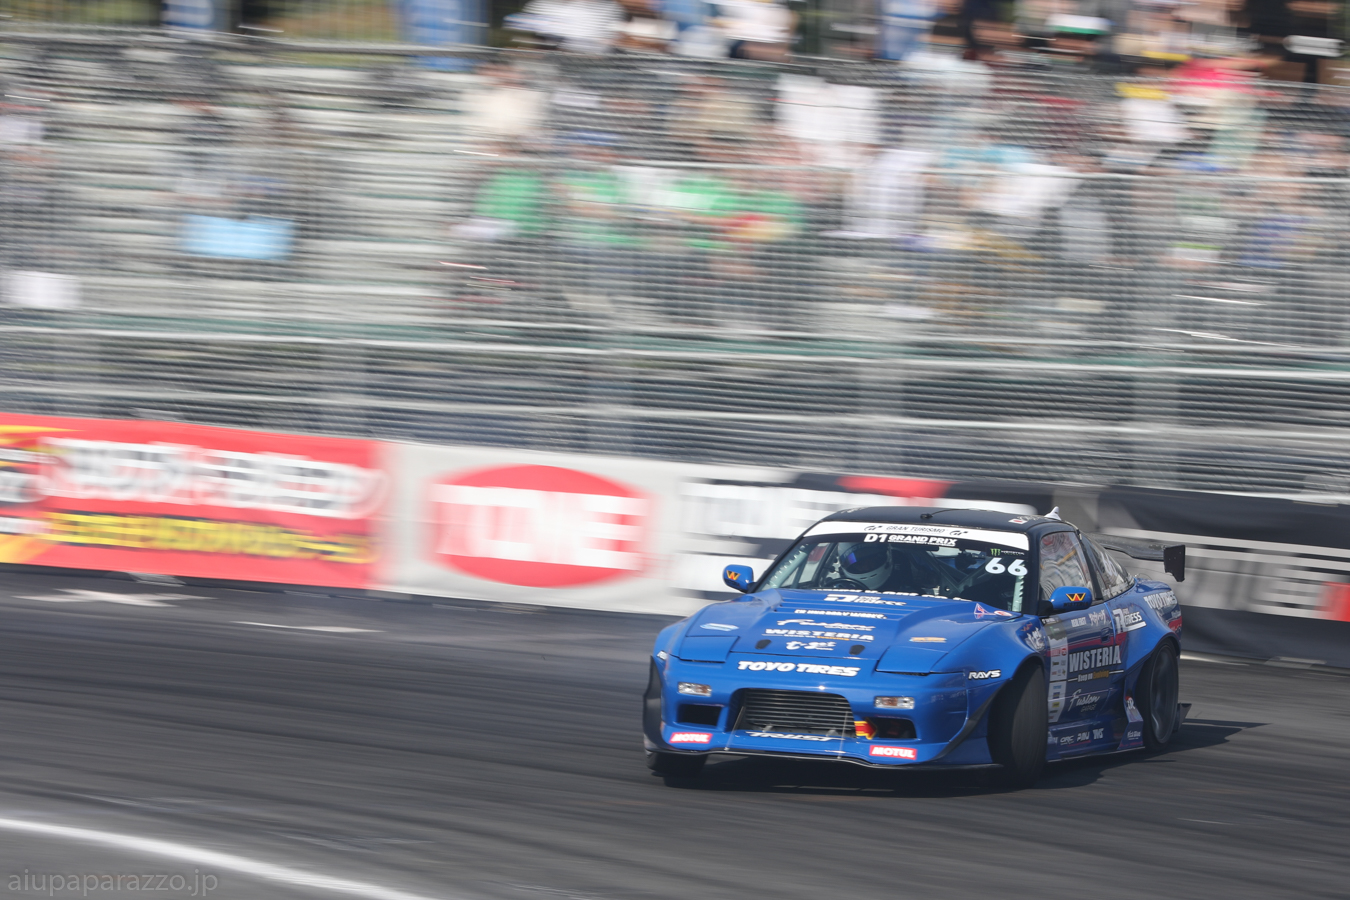 d1gp_tan2016lap3-6.jpg